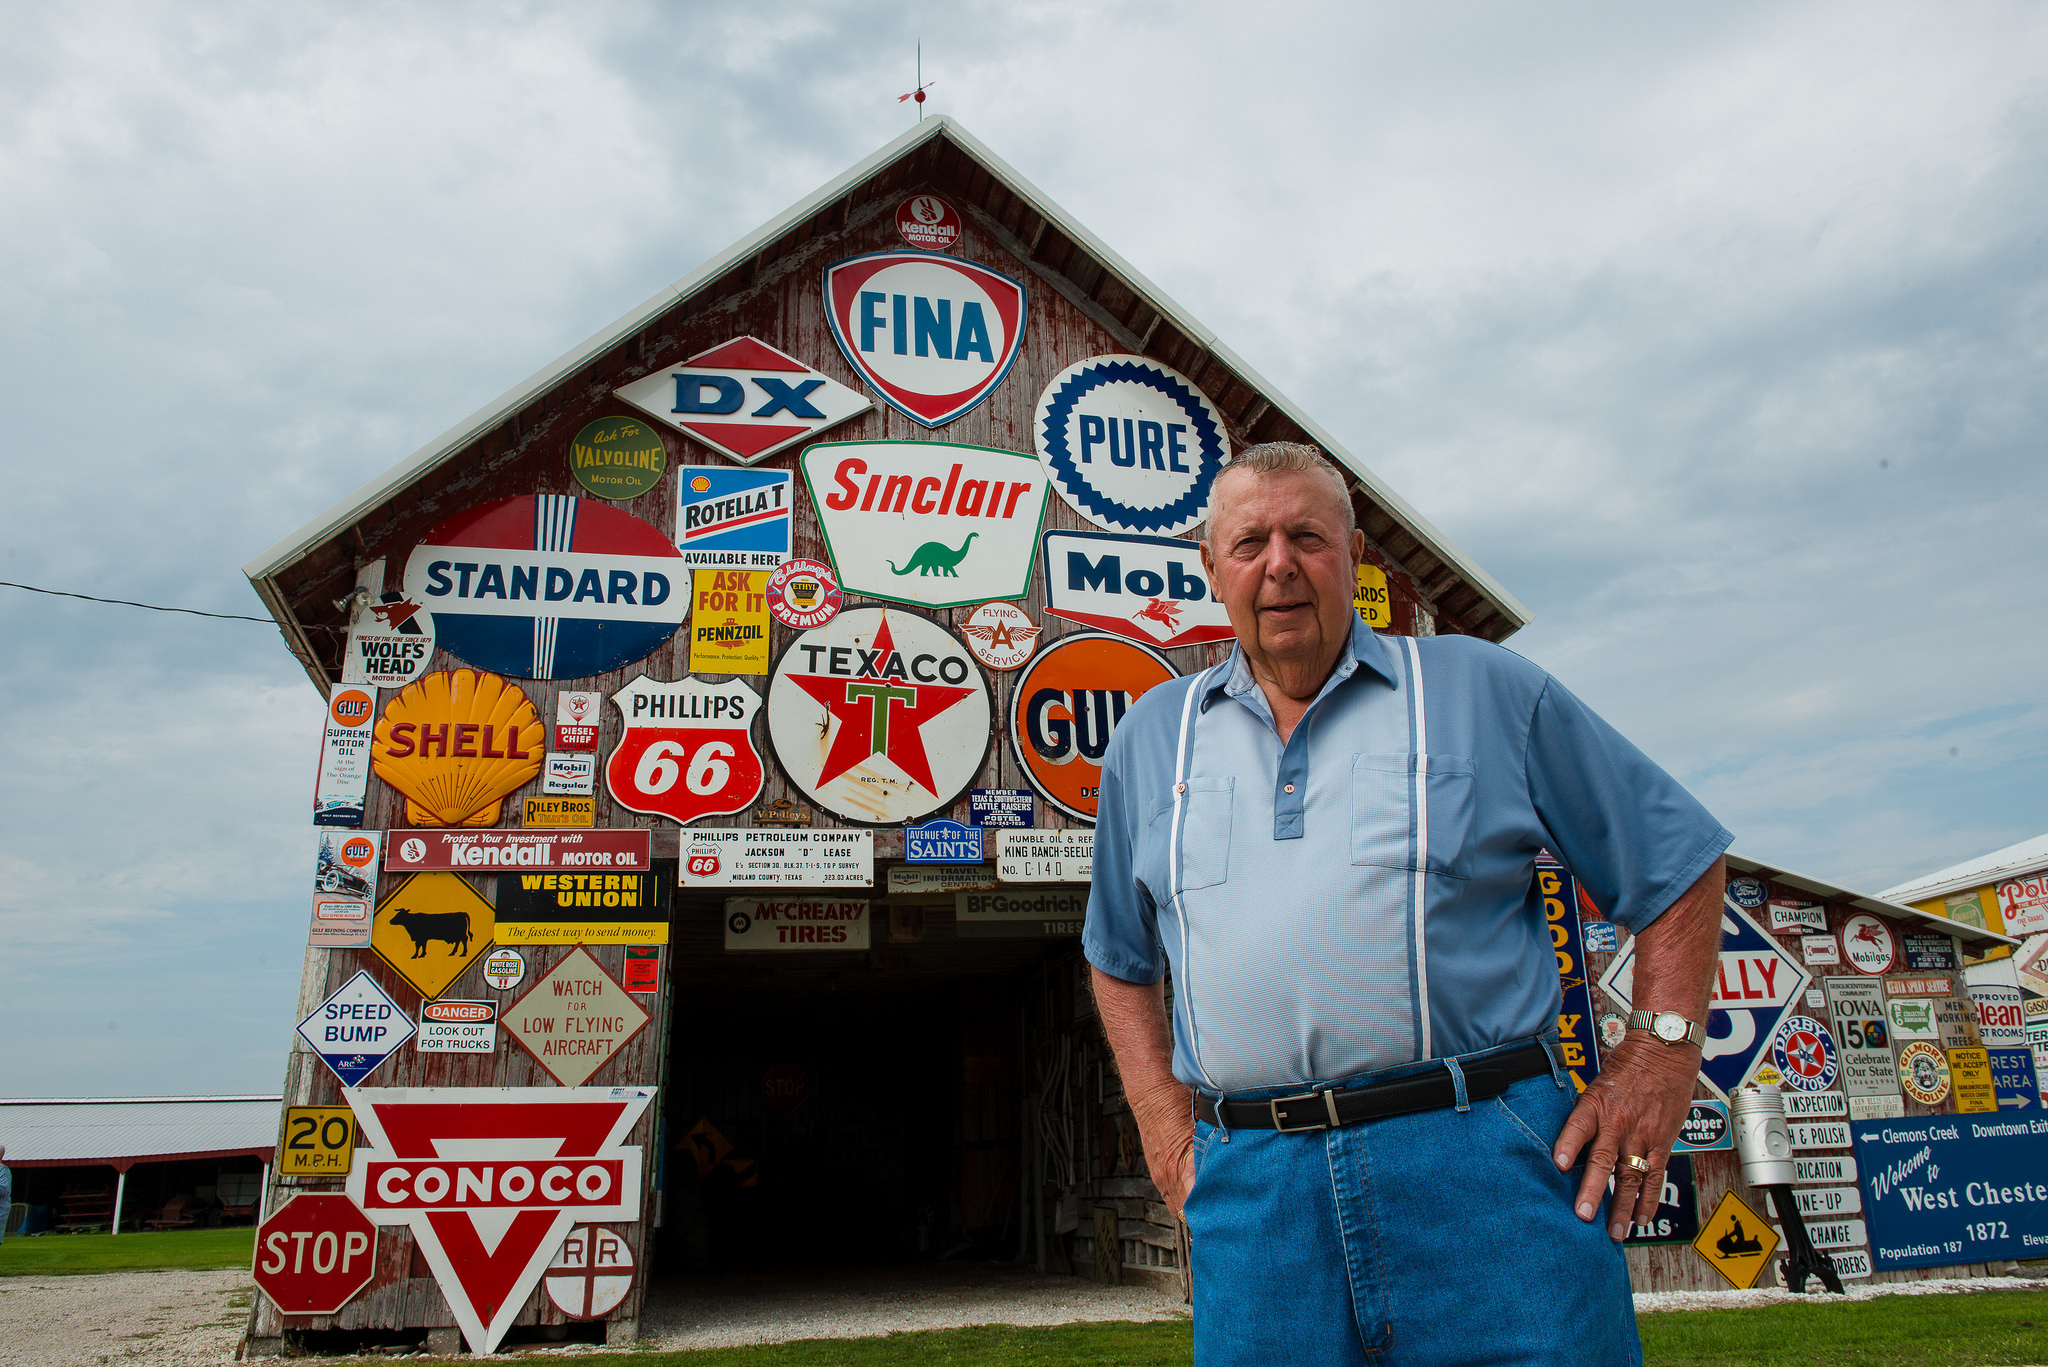 Hal Colliver has a sign extravaganza in West Chester. Photo credit: Joseph L. Murphy/Iowa Soybean Association